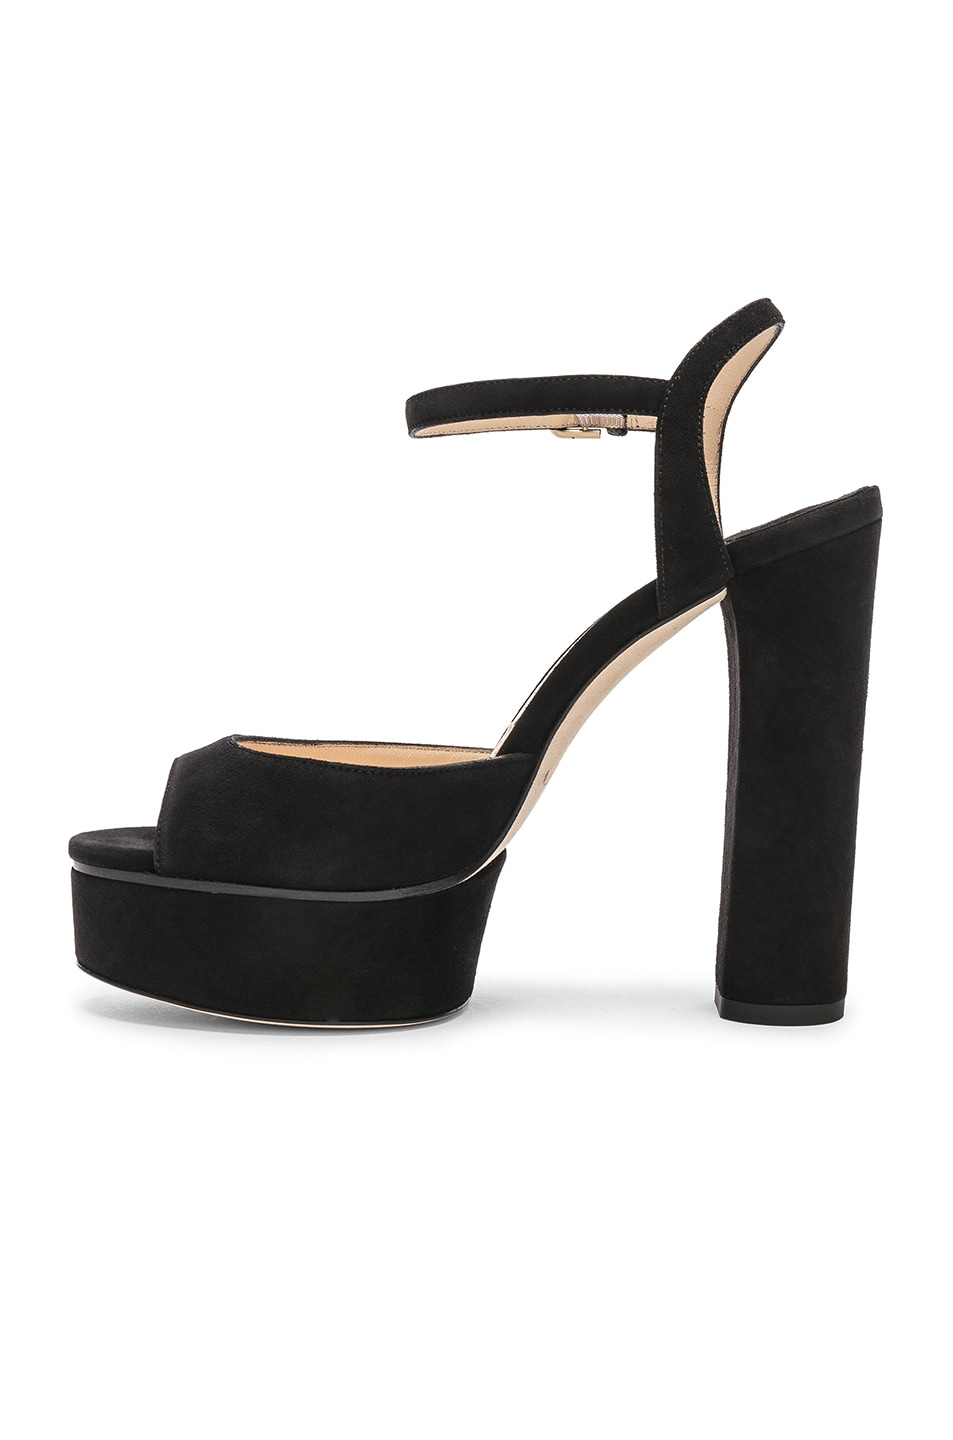 Image 5 of Jimmy Choo Peachy 125 Suede Platform in Black